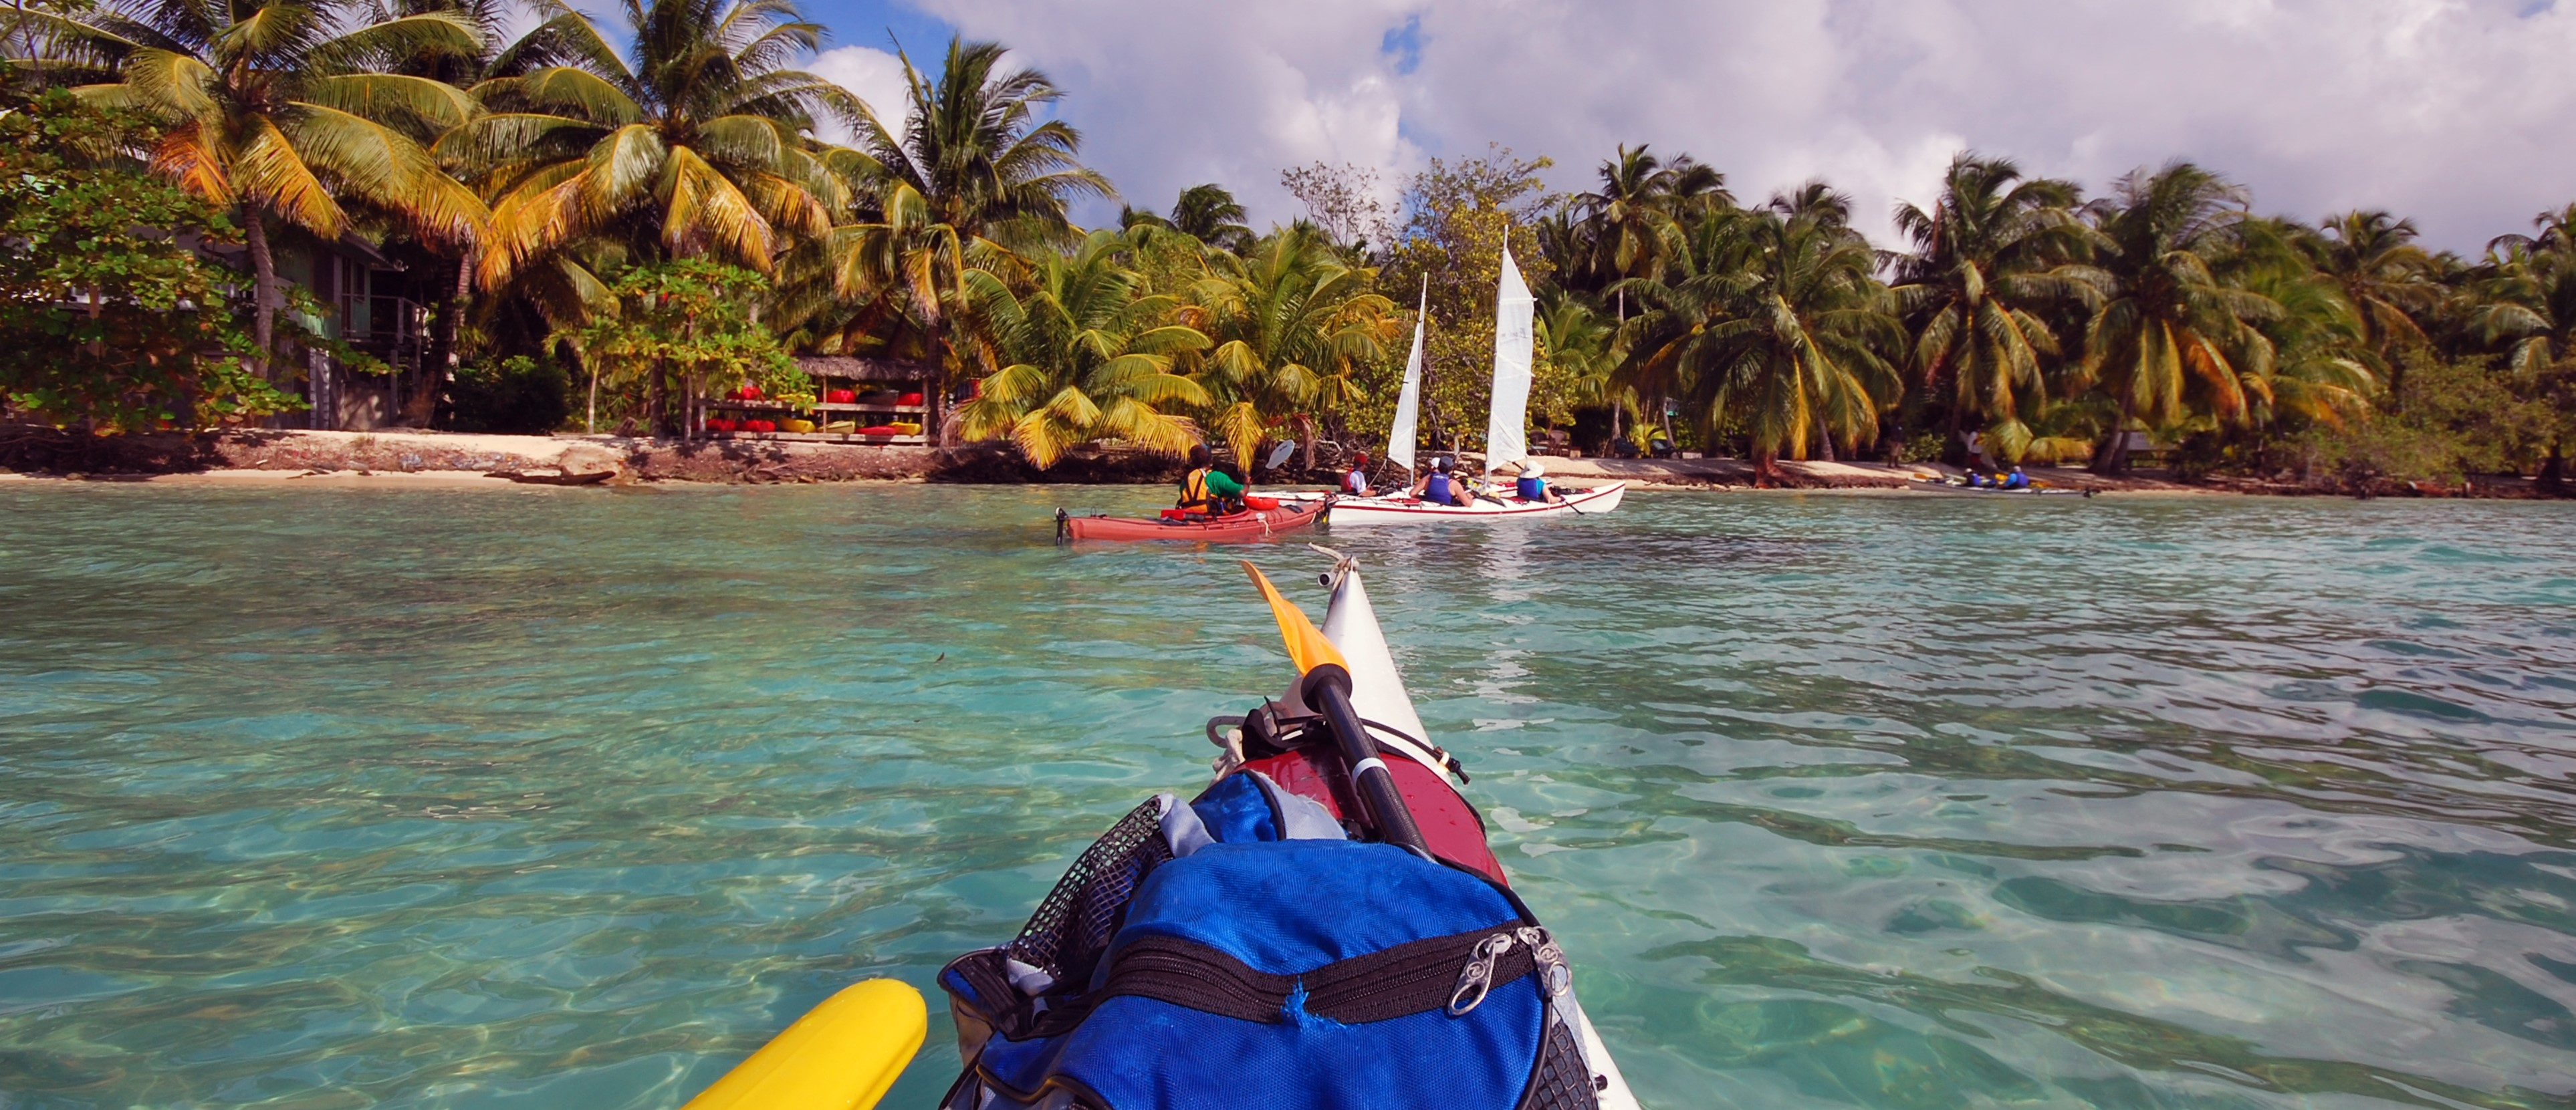 Things You Might Not Know About Belize